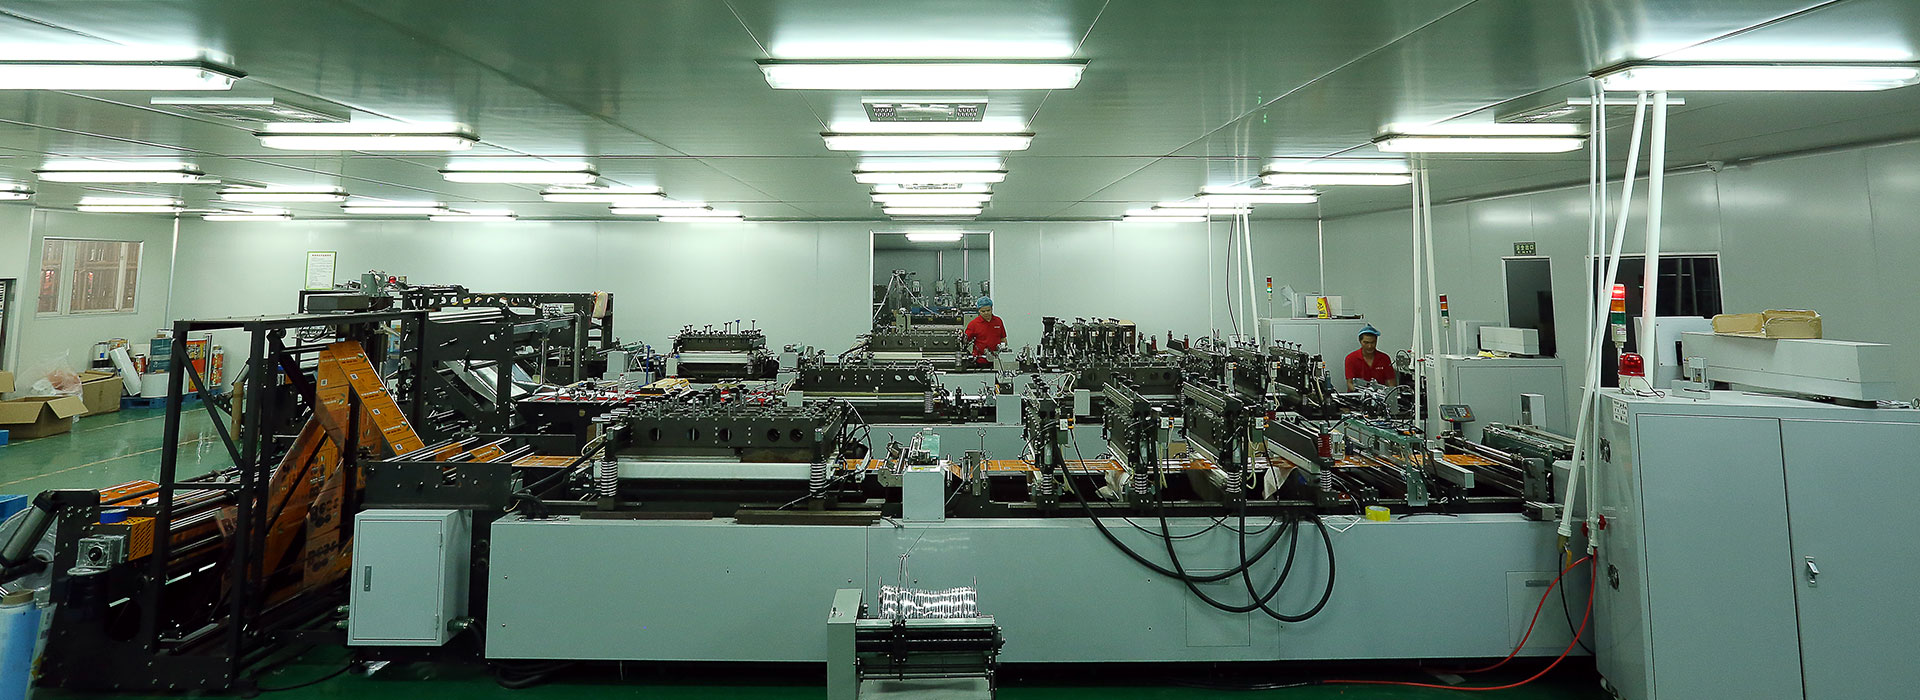 Our State-of-the-art production facilities.